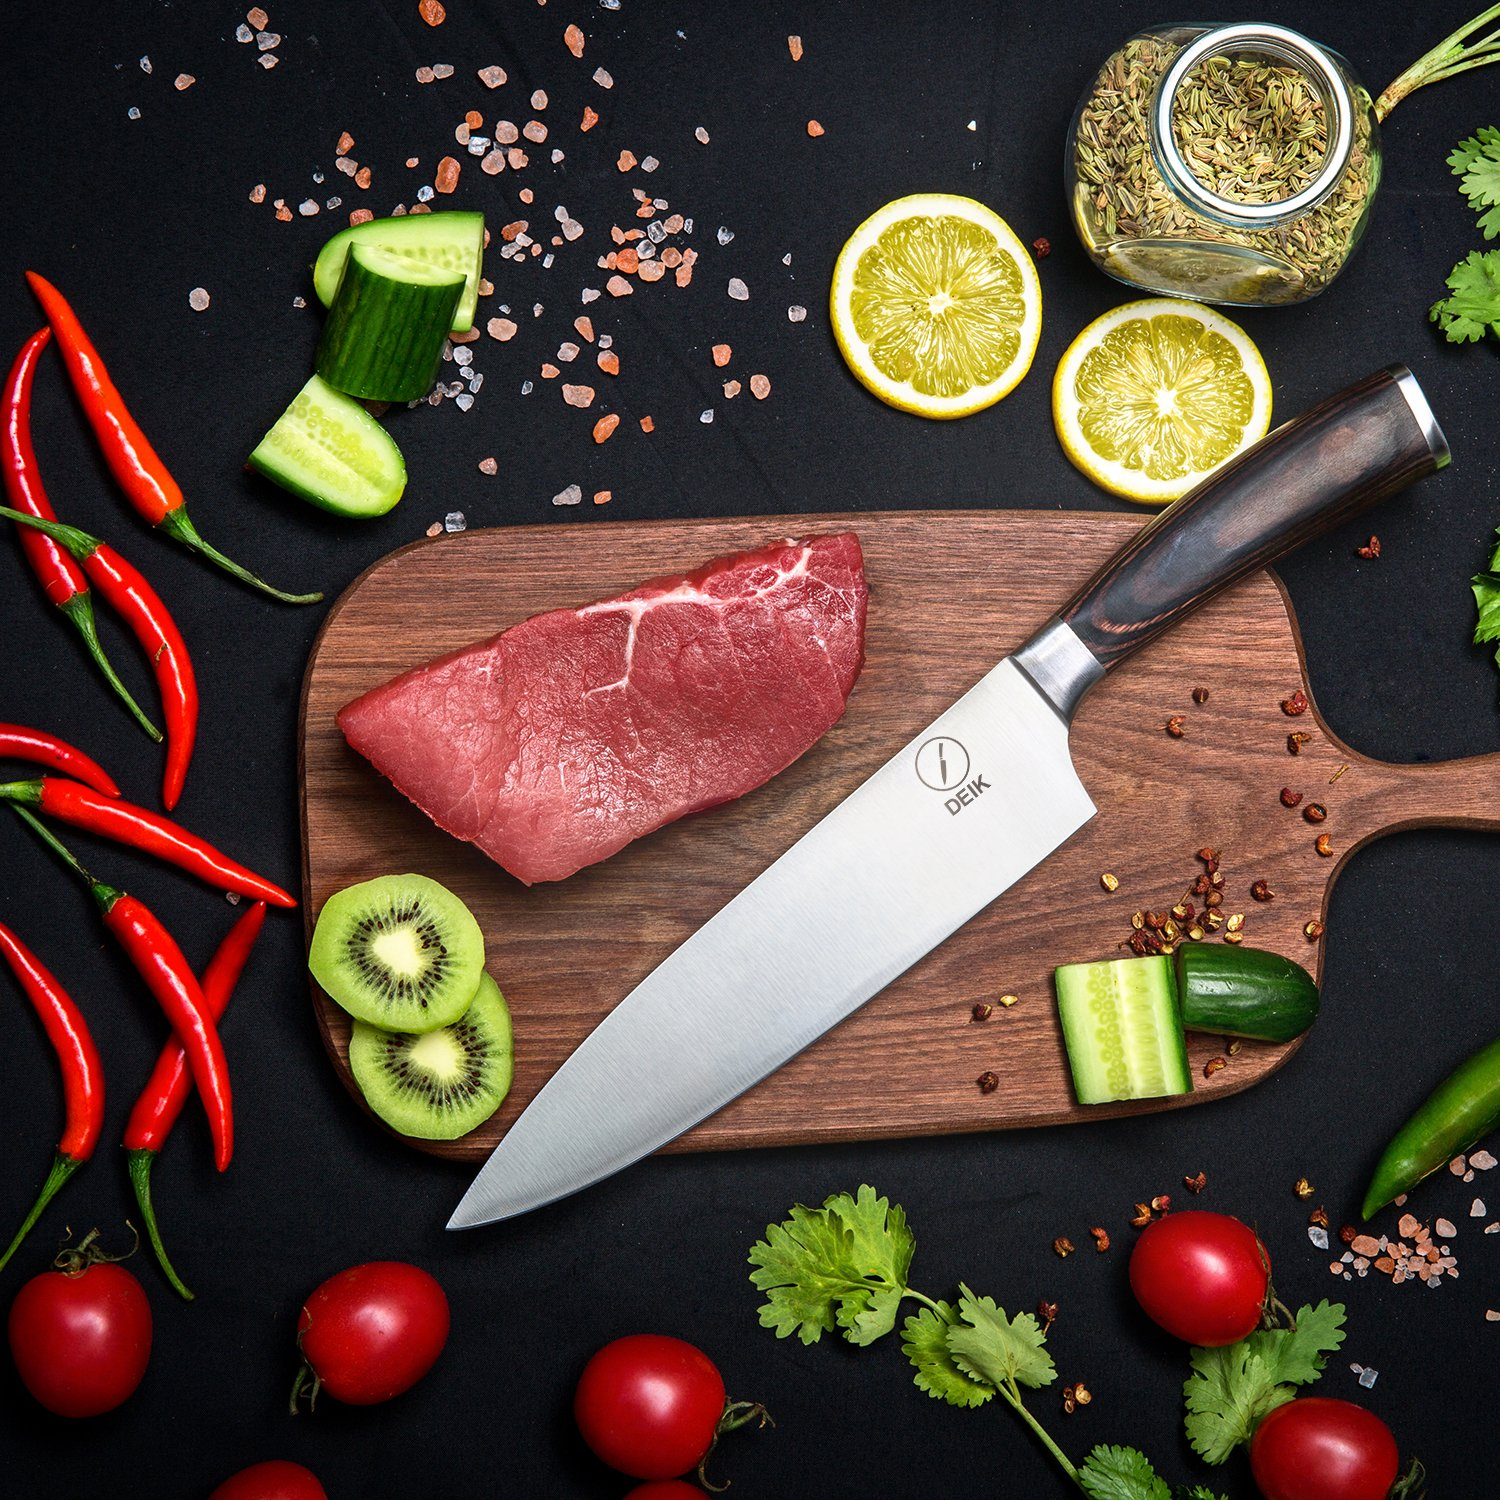 Deik Chef Knife, 8 Inch Kitchen Knife with 1.4116 Imported Stainless Steel, Professional Grade Balance and Super Sharp with Ergnonomic Classy Wooden Handle by Deik (Image #6)